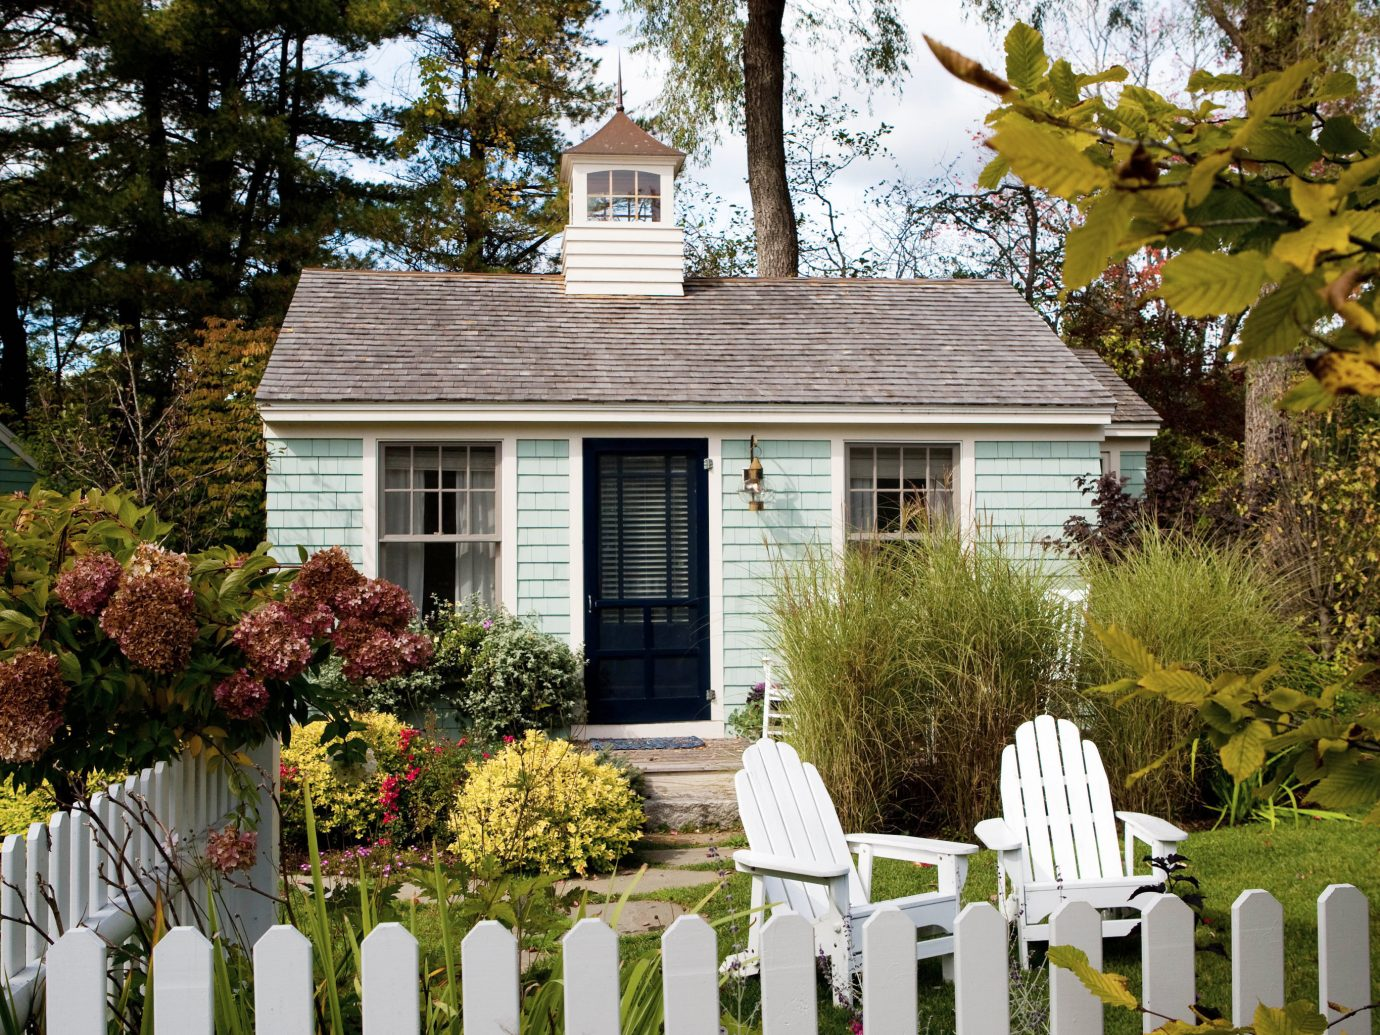 Exterior of a cabin at The Cottages at Cabot Cove, Maine